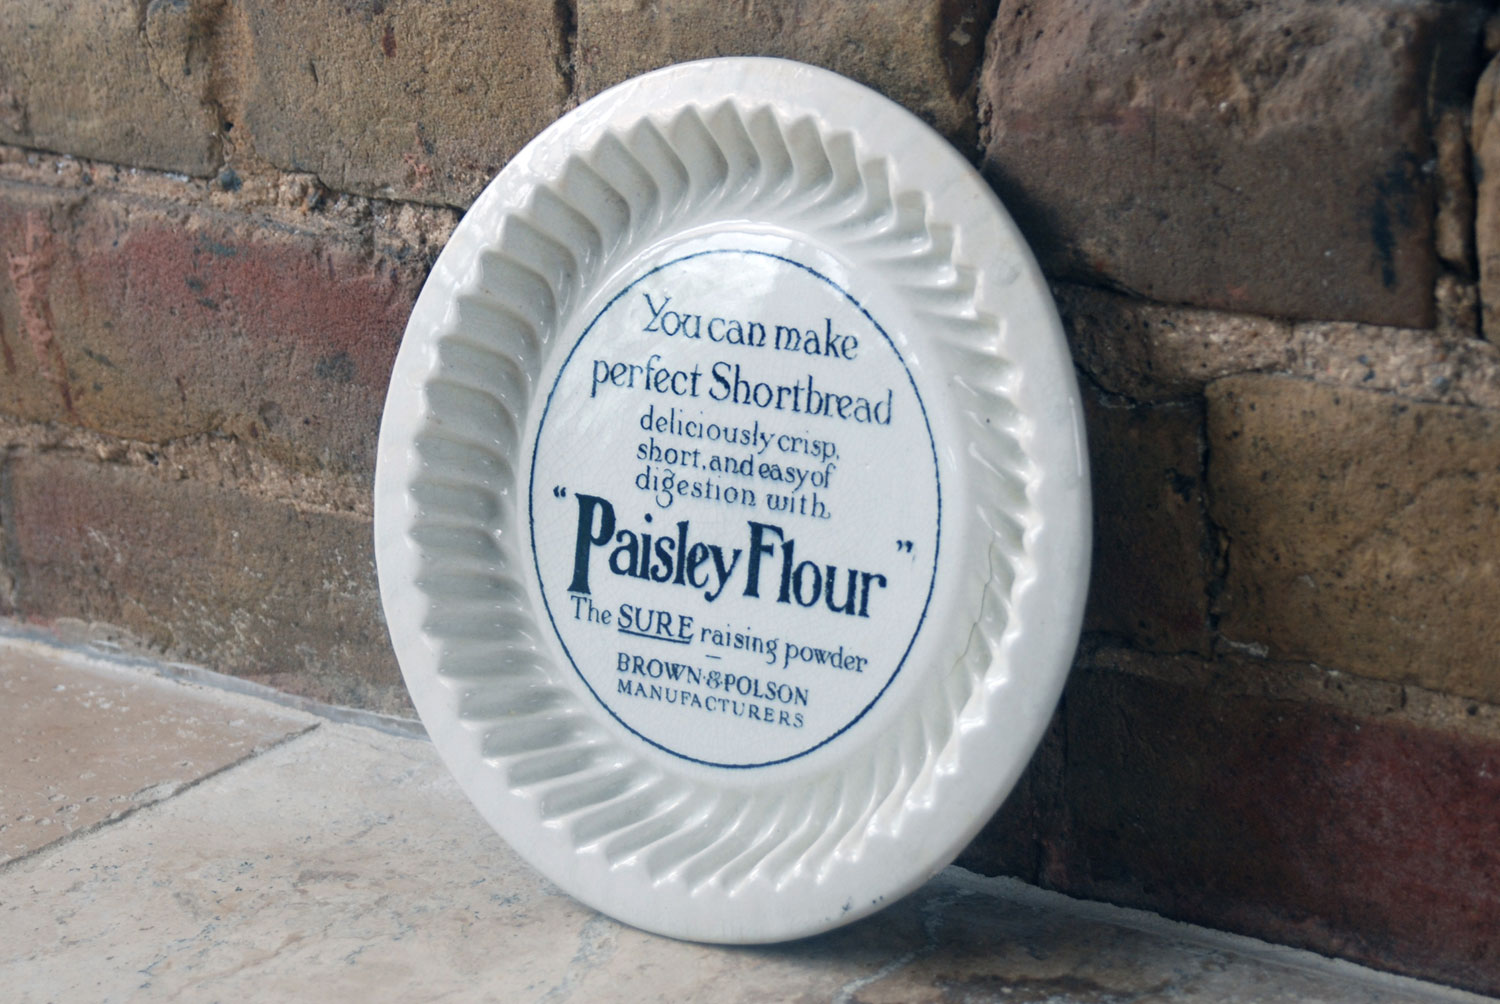 brown polson antique ironstone advertising shortbread mould mold